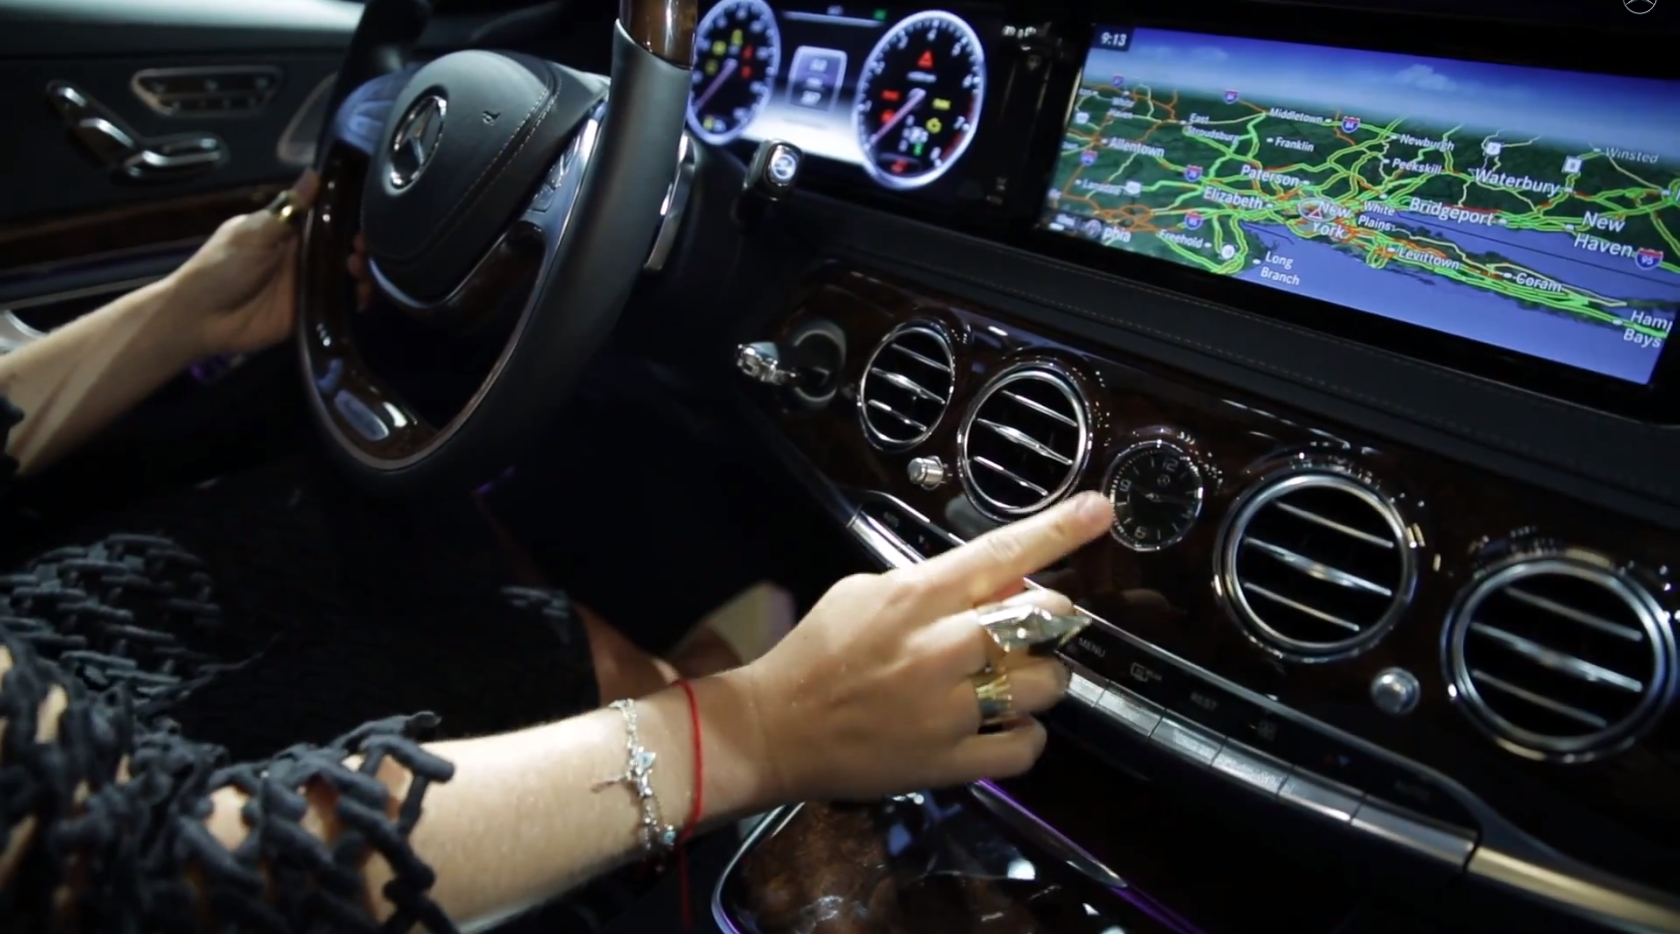 new-s-class-w222-gets-praised-by-claire-distenfeld-of-fivestory-video-